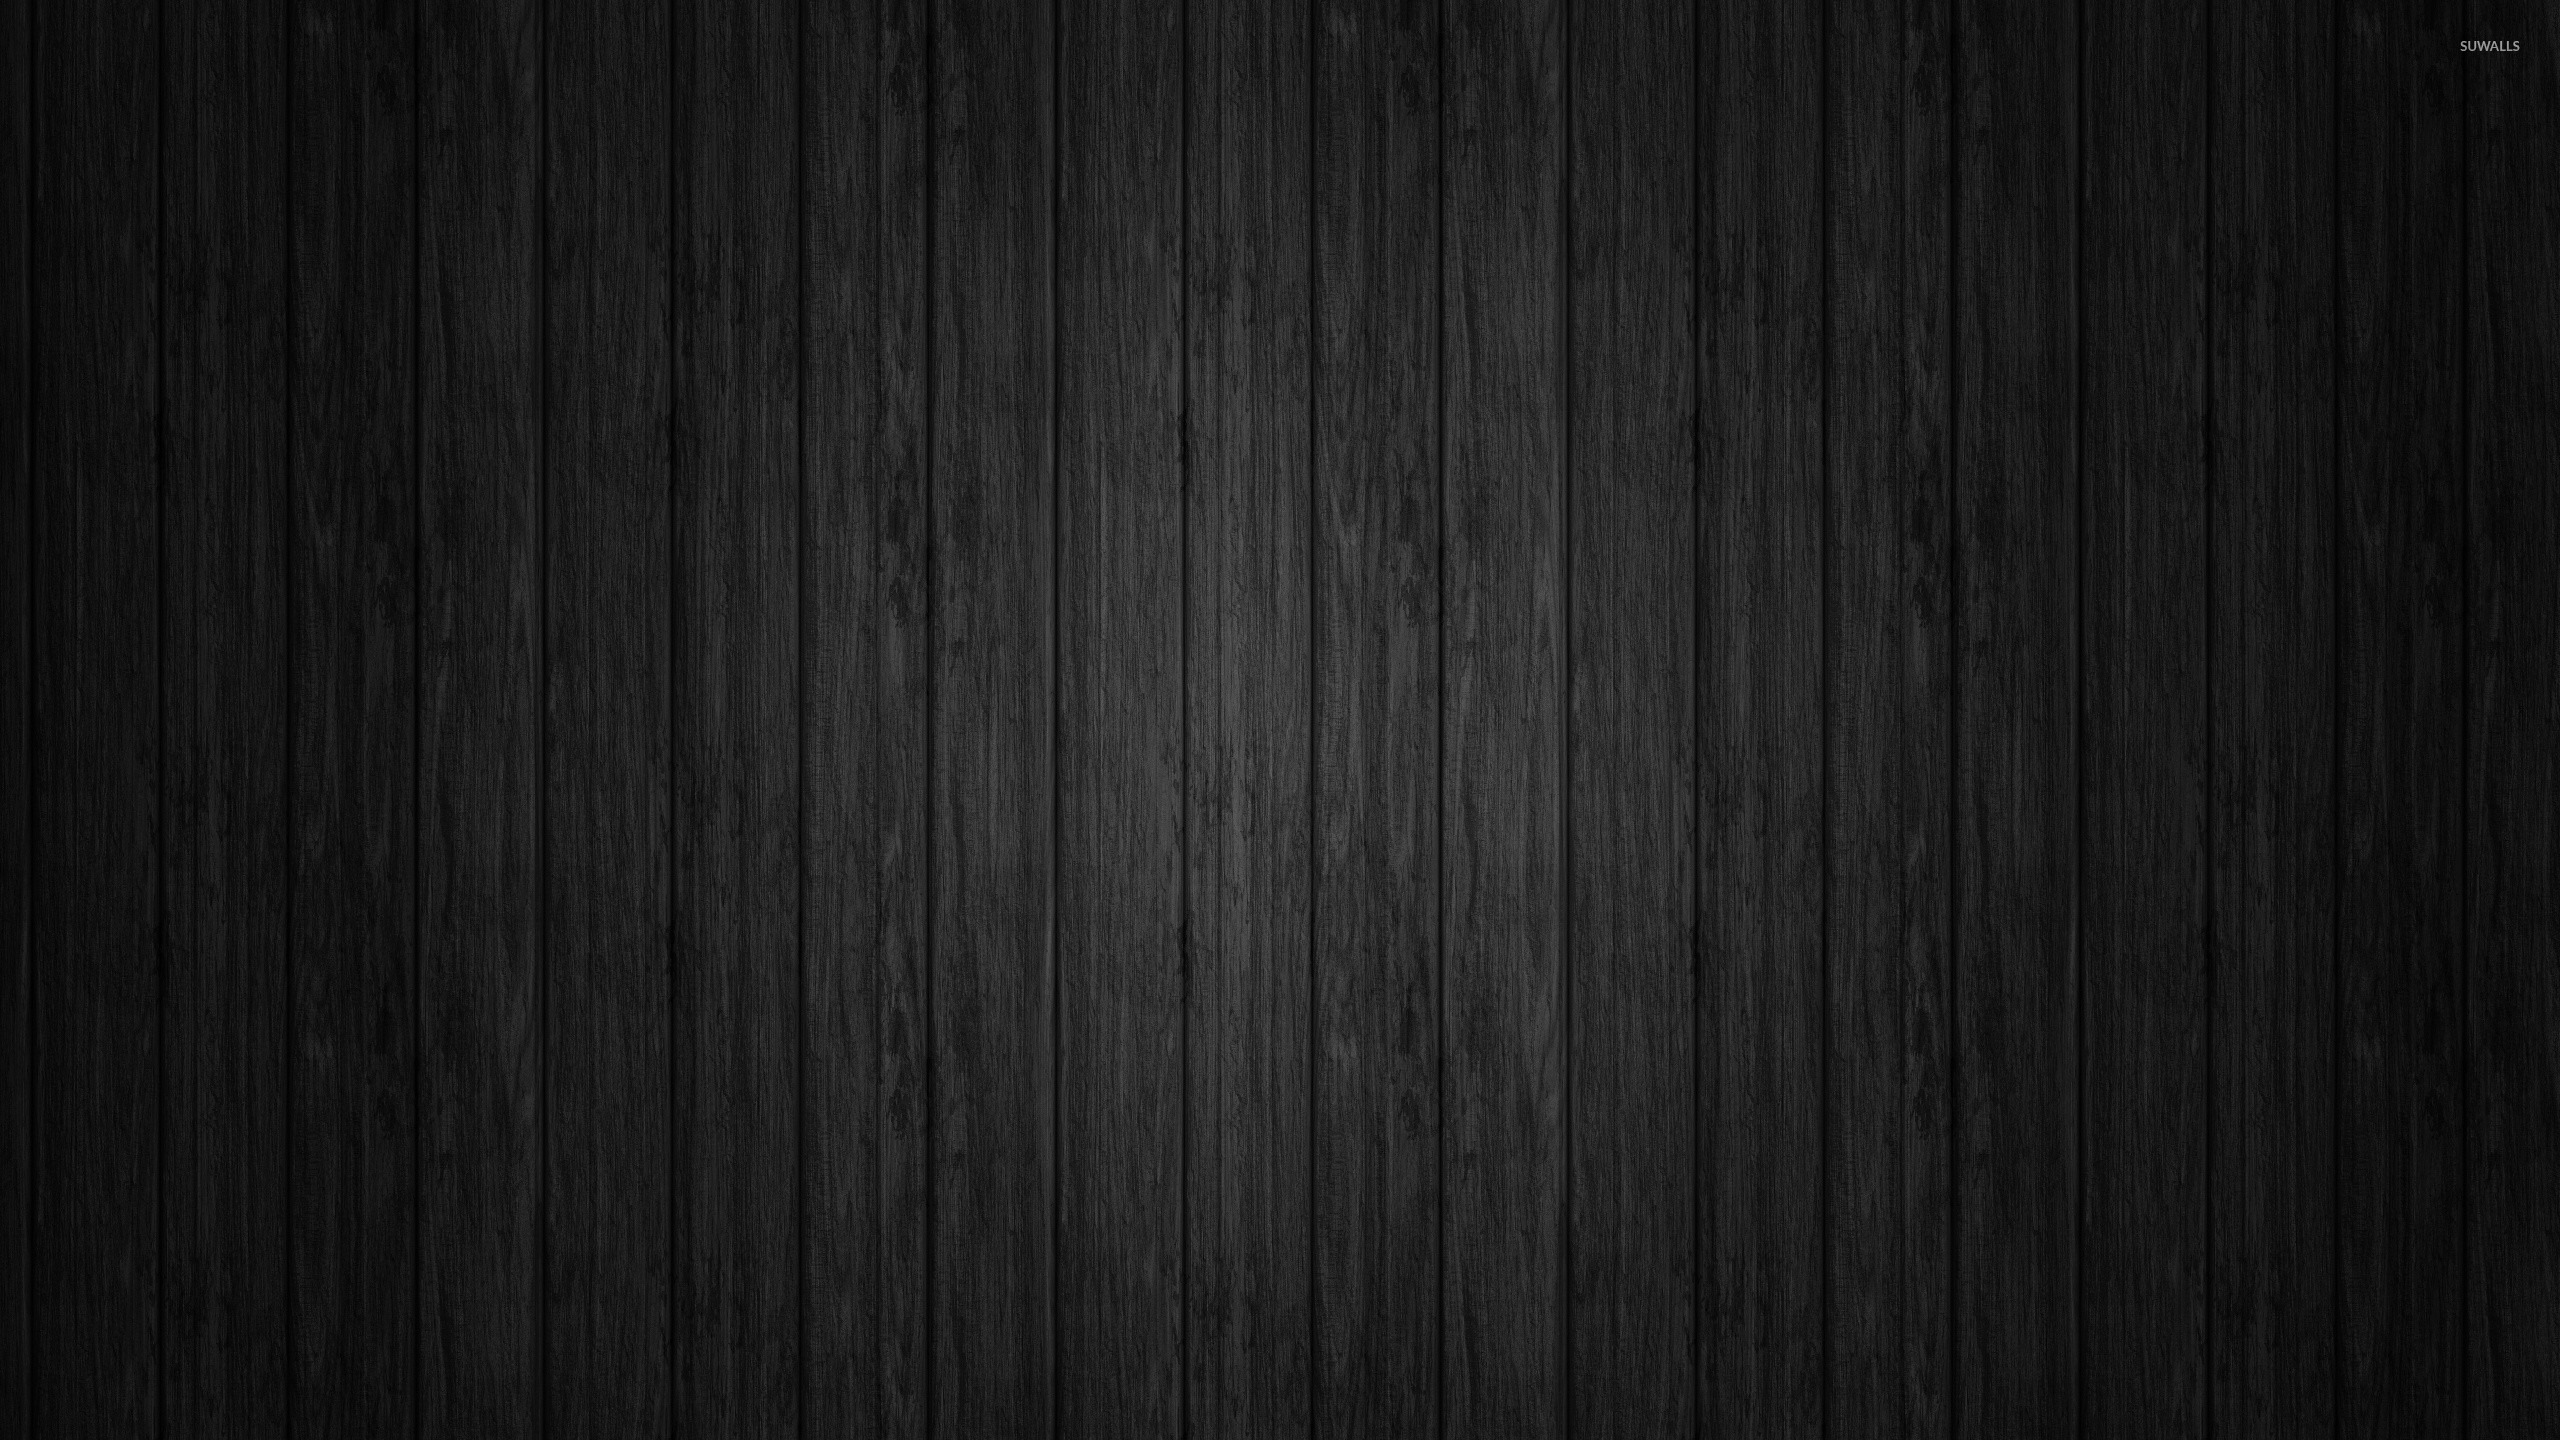 Wooden wall wallpaper abstract wallpapers 44173 for Wallpaper for your wall